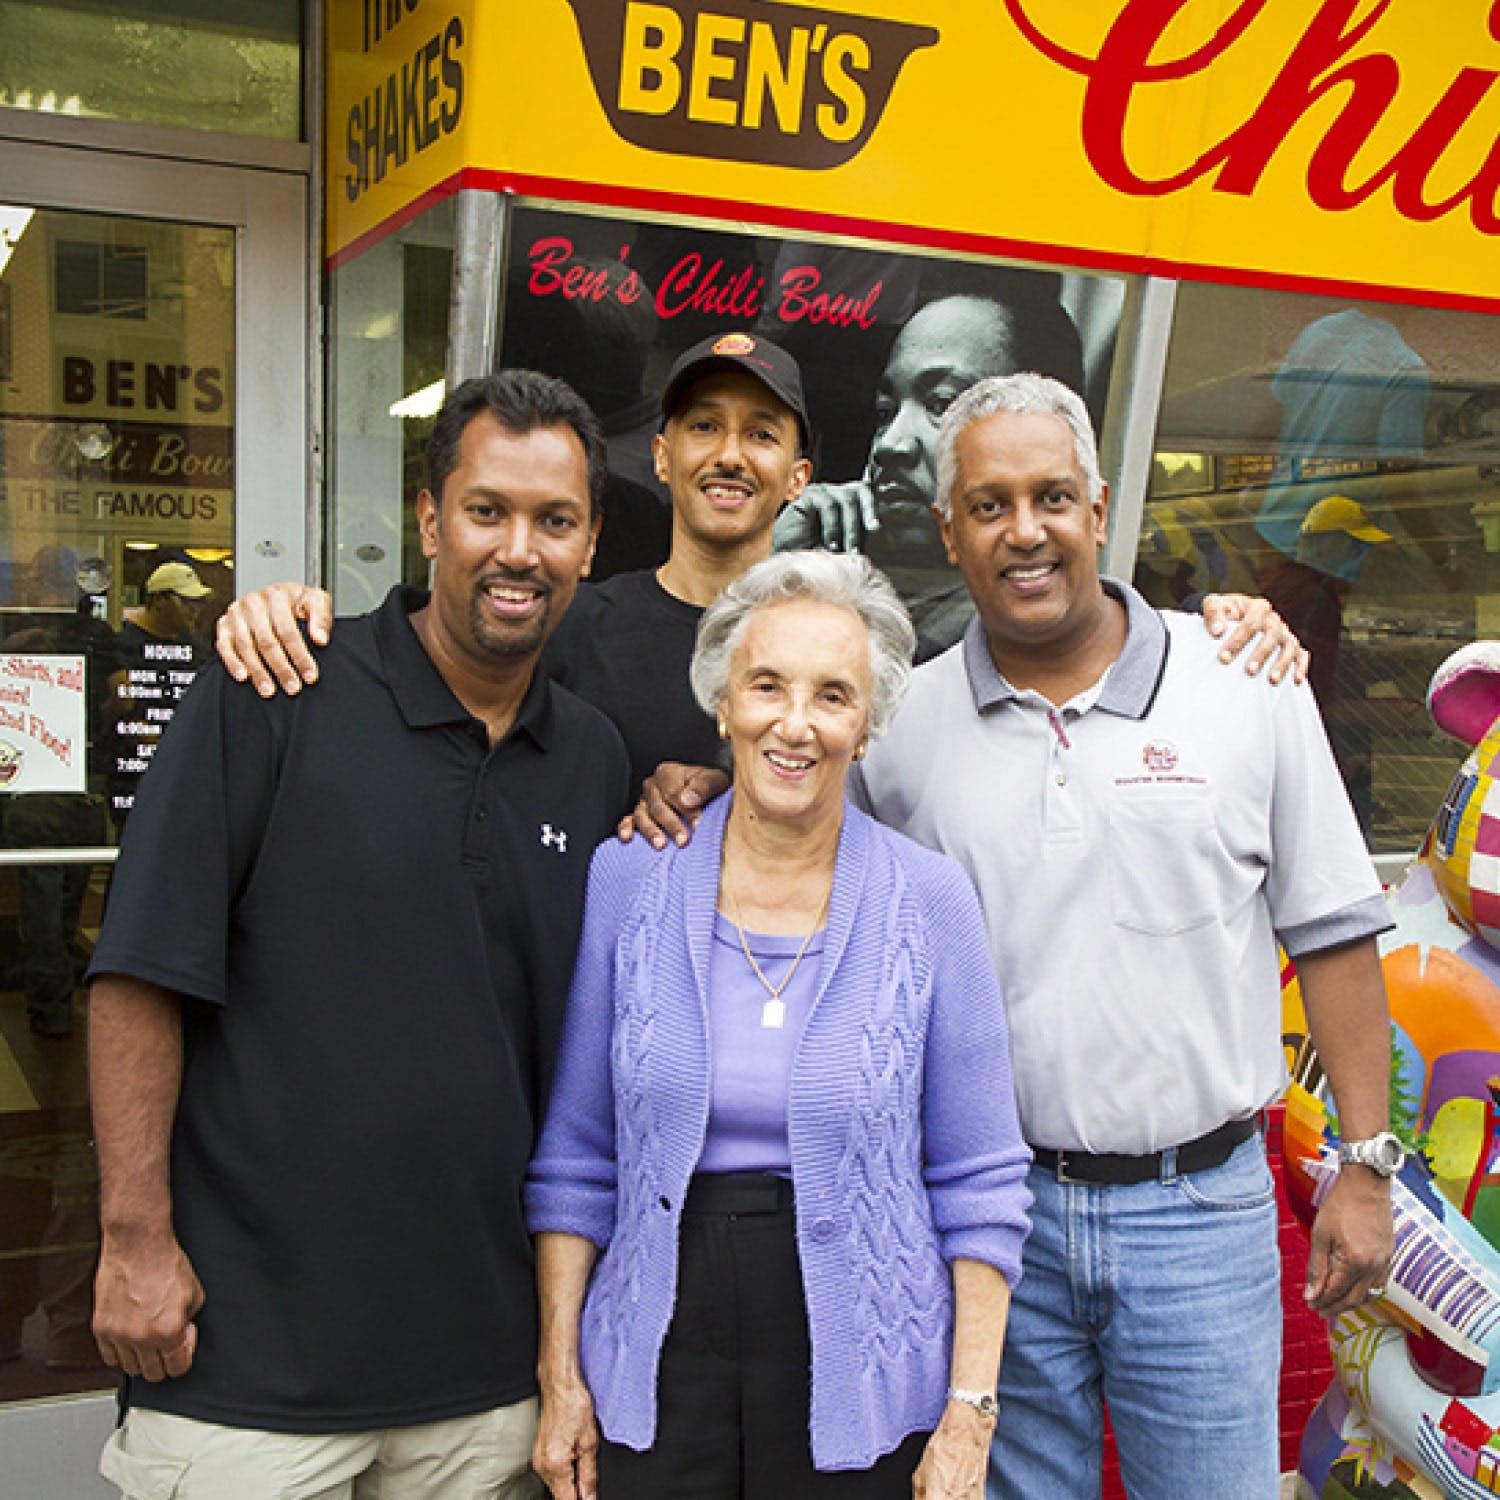 Virginia Ali: Dedicating Ben's Chili Bowl to Philanthropy